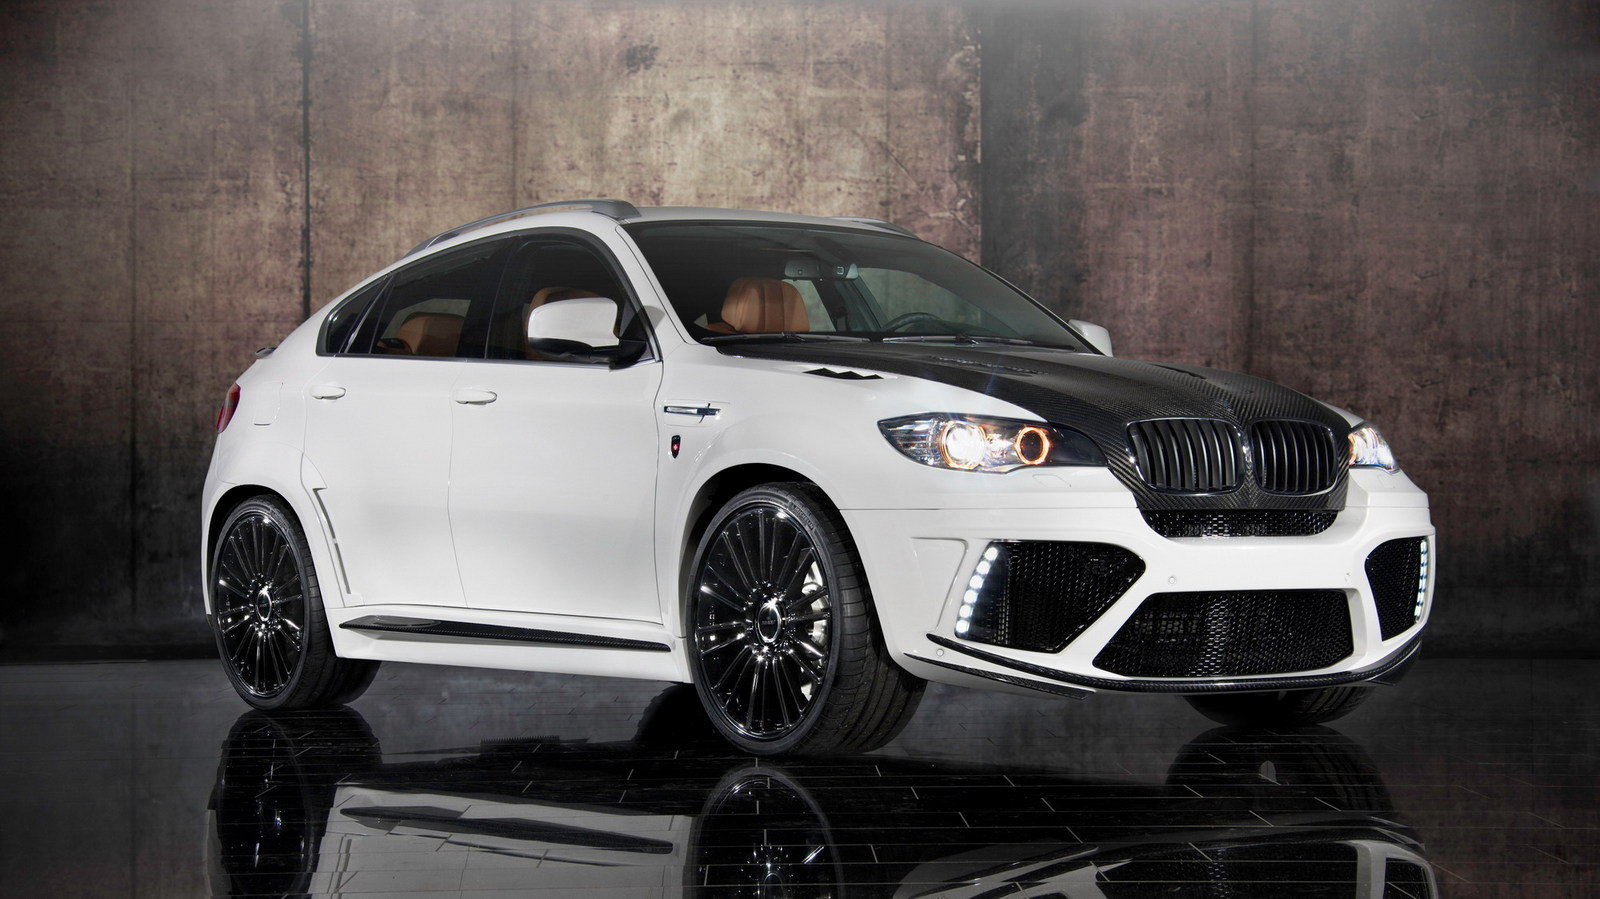 2010 Bmw X6 M By Mansory Review Top Speed